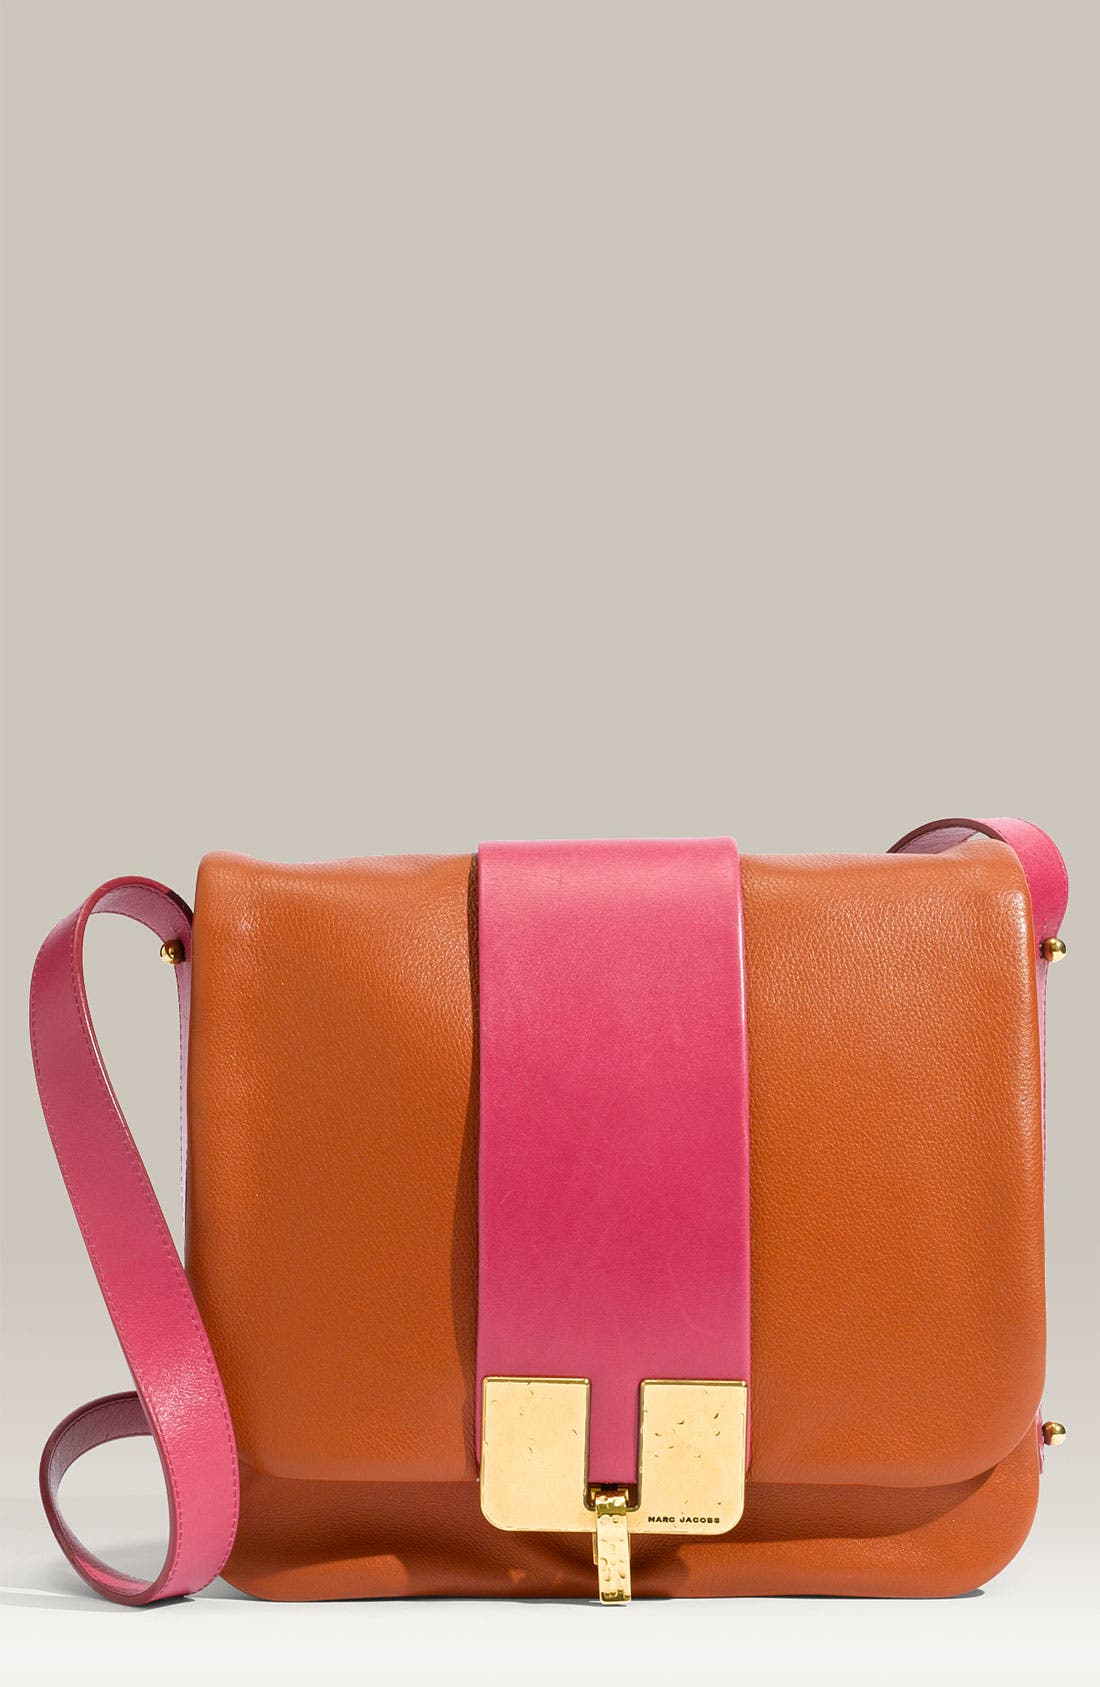 Main Image - MARC JACOBS 'Bamboo' Leather Crossbody Bag